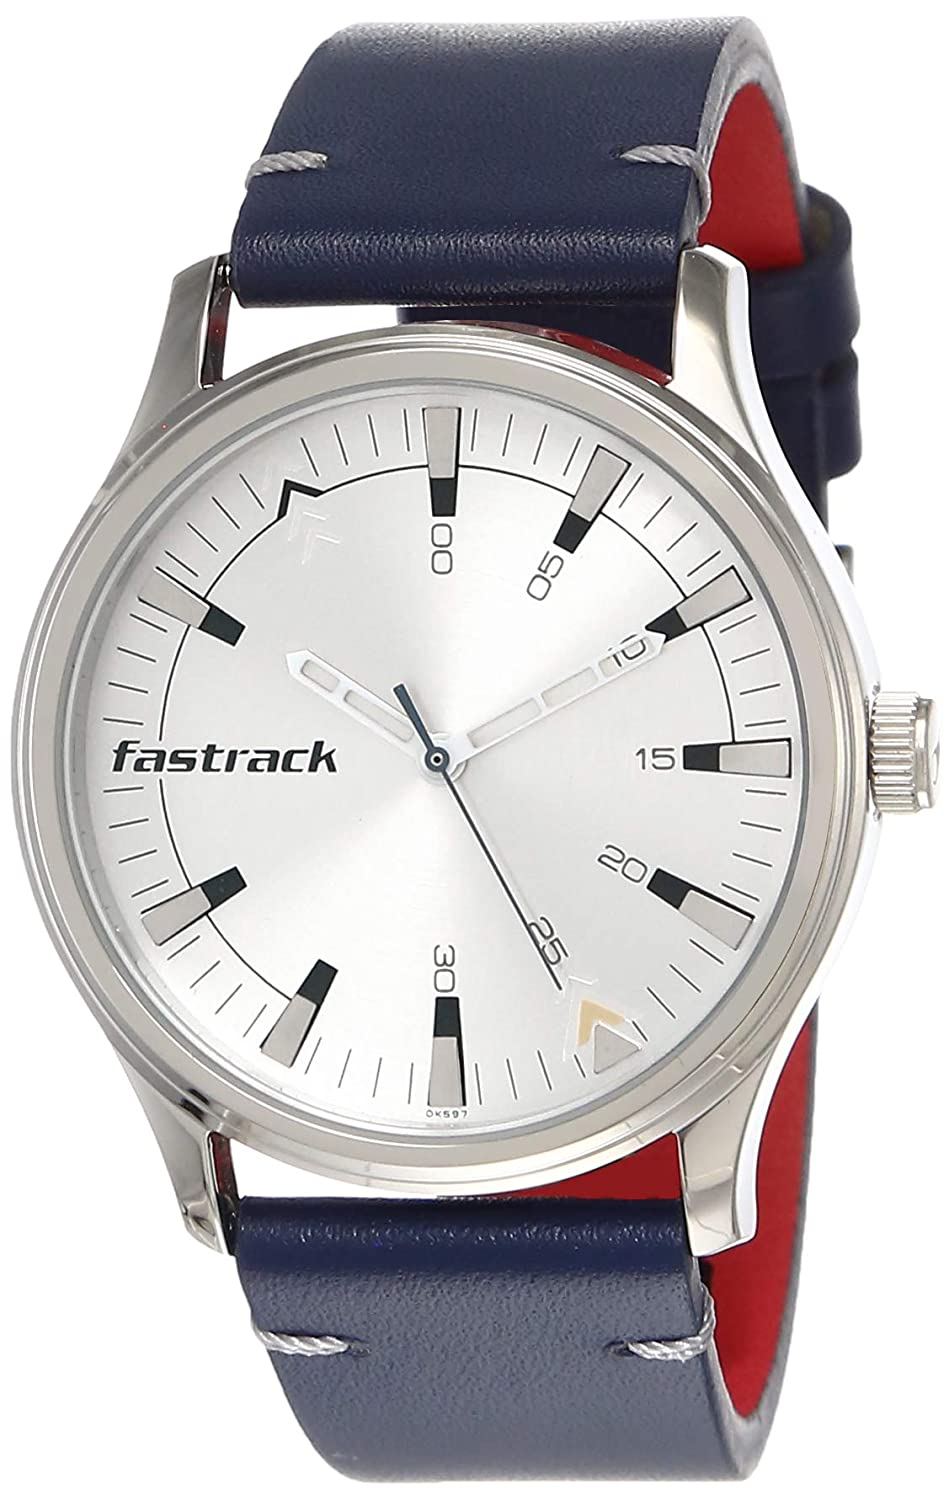 Top 10 Best Fastrack Watches for mens under 3000 in India